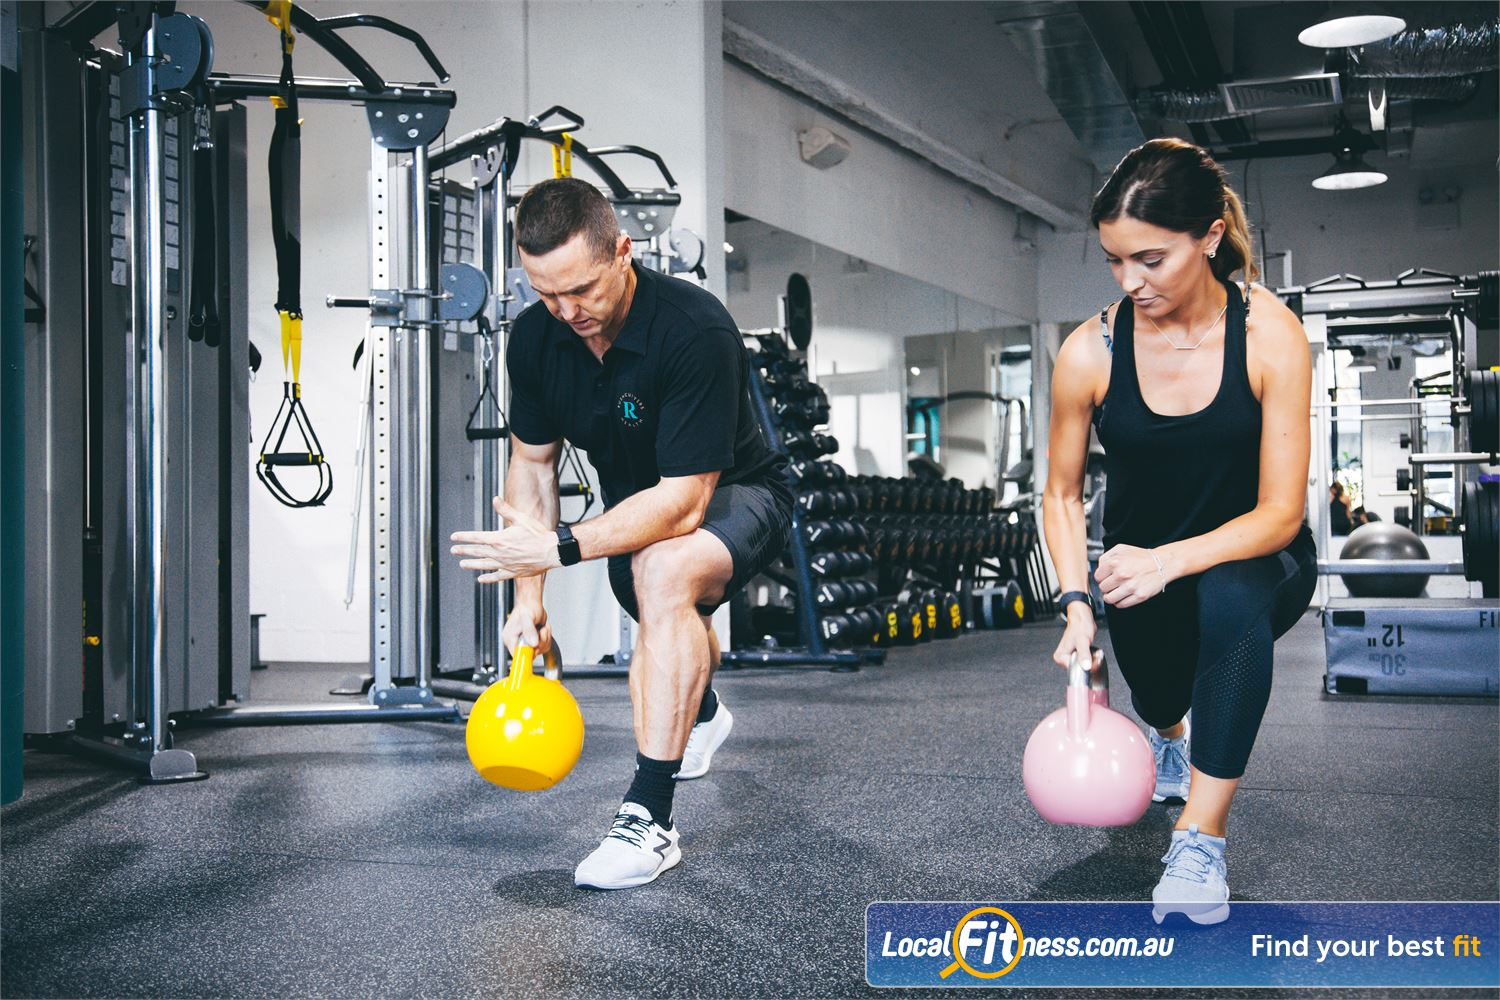 Rushcutters Health Rushcutters Bay Rushcutters Health was voted BEST Personal Training Studio in Sydney in 2019 and 2020.